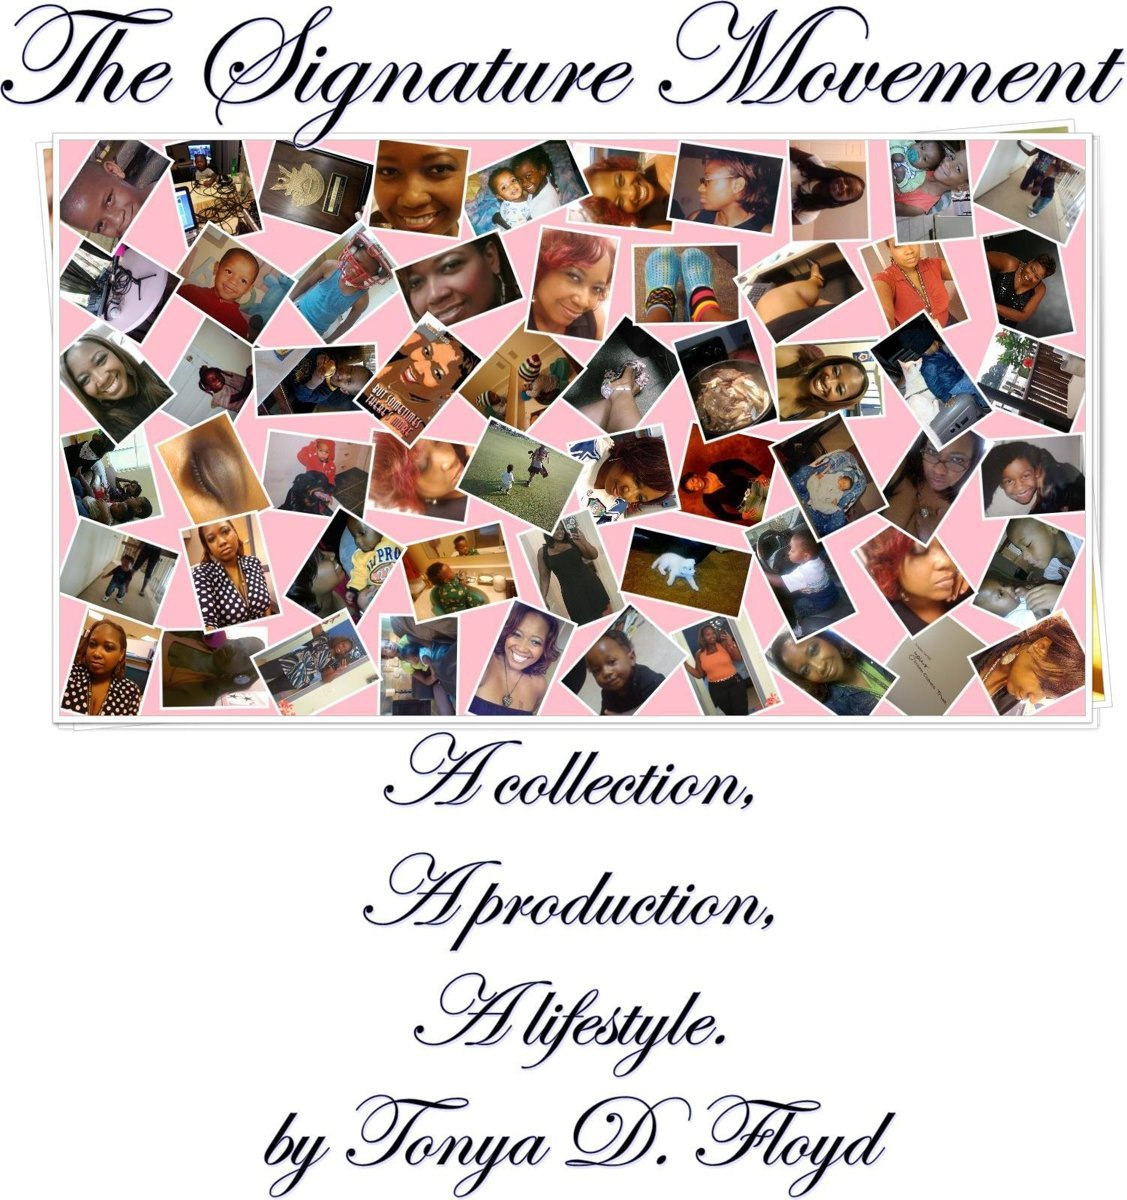 The Signature Movement